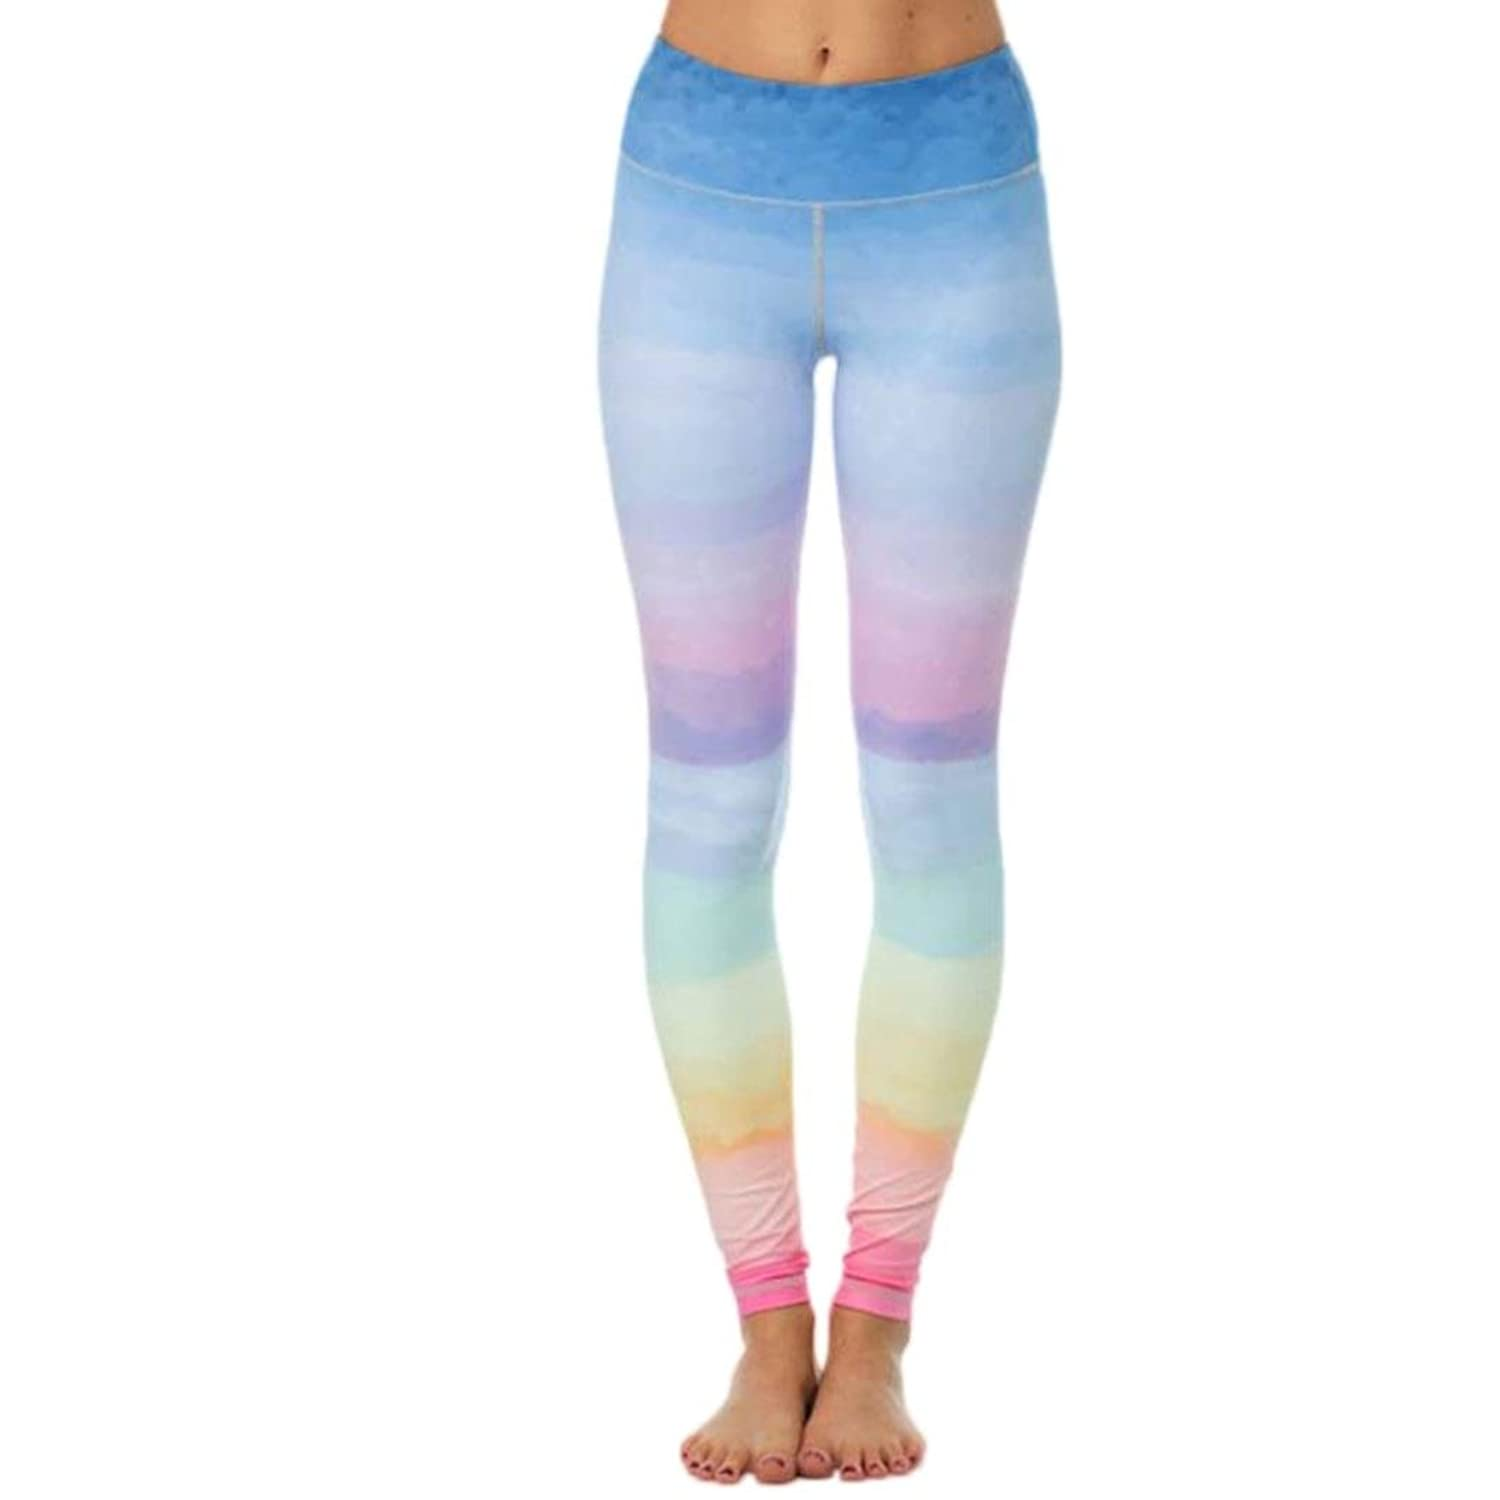 0f19cca1b987b WM & MW Fitness Pants,Women Leggings colorful Ombre Sports Gym Yoga Workout  Lounge Athletic